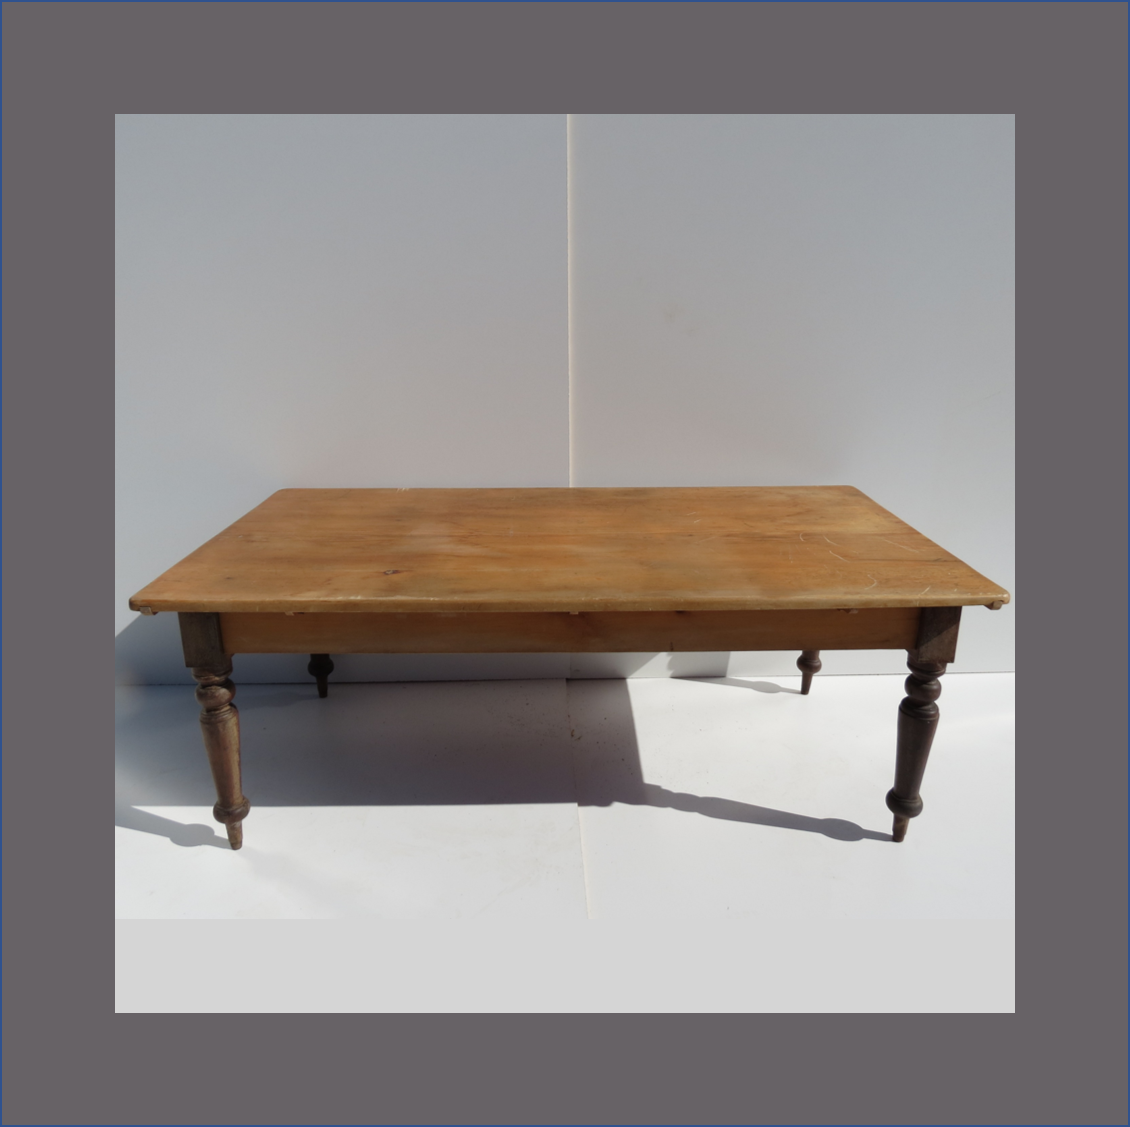 antique-solid-wood-dining-table